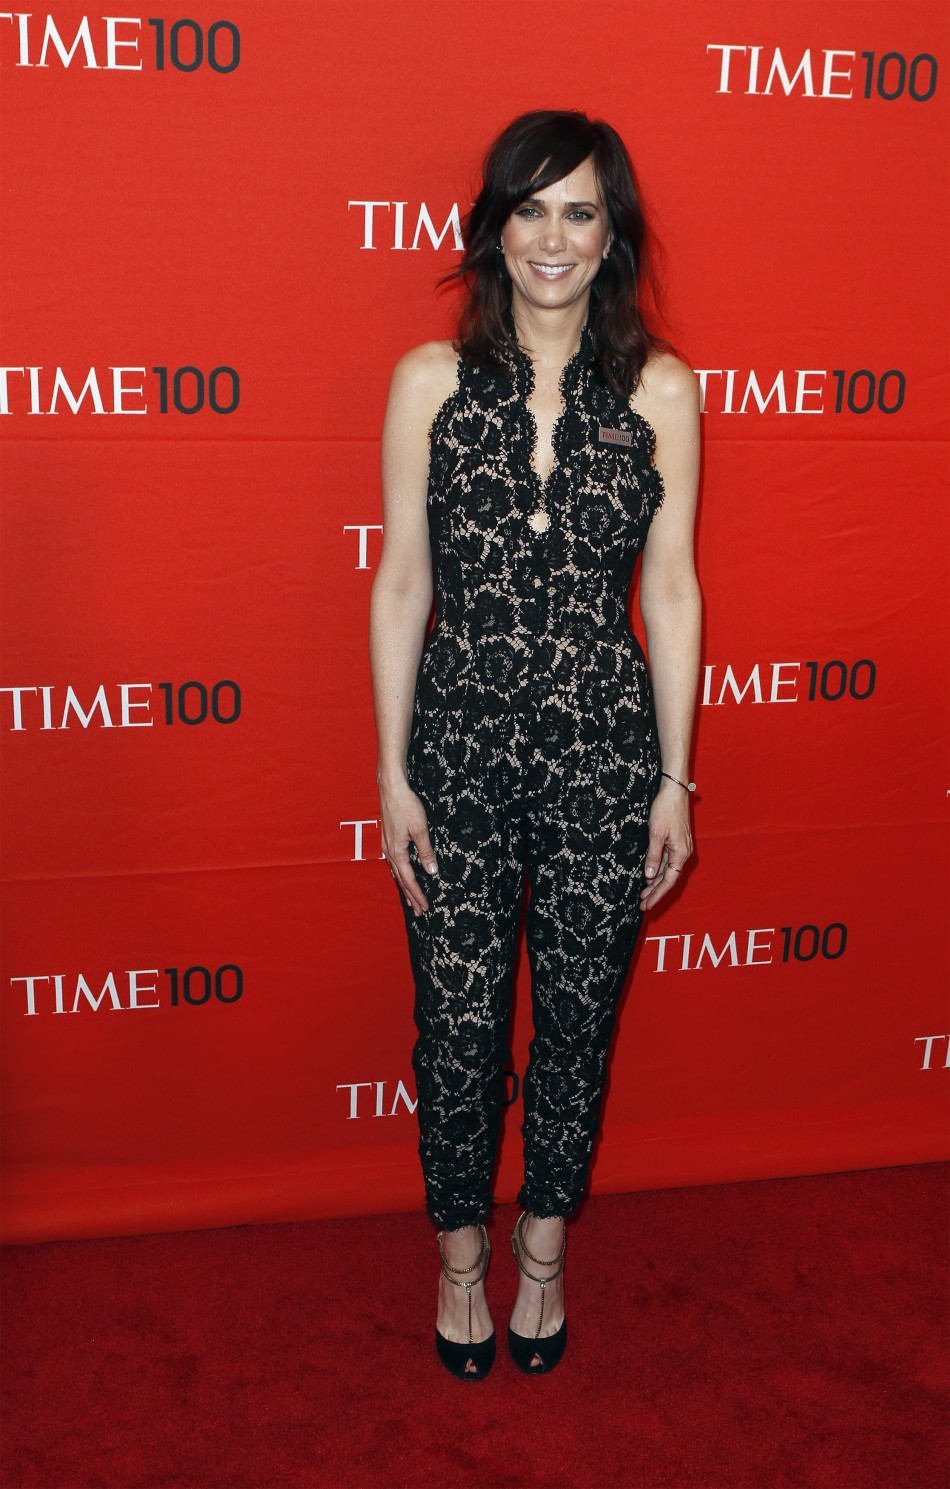 Actress Kristen Wiig arrives to be honored at the Time 100 Gala in New York